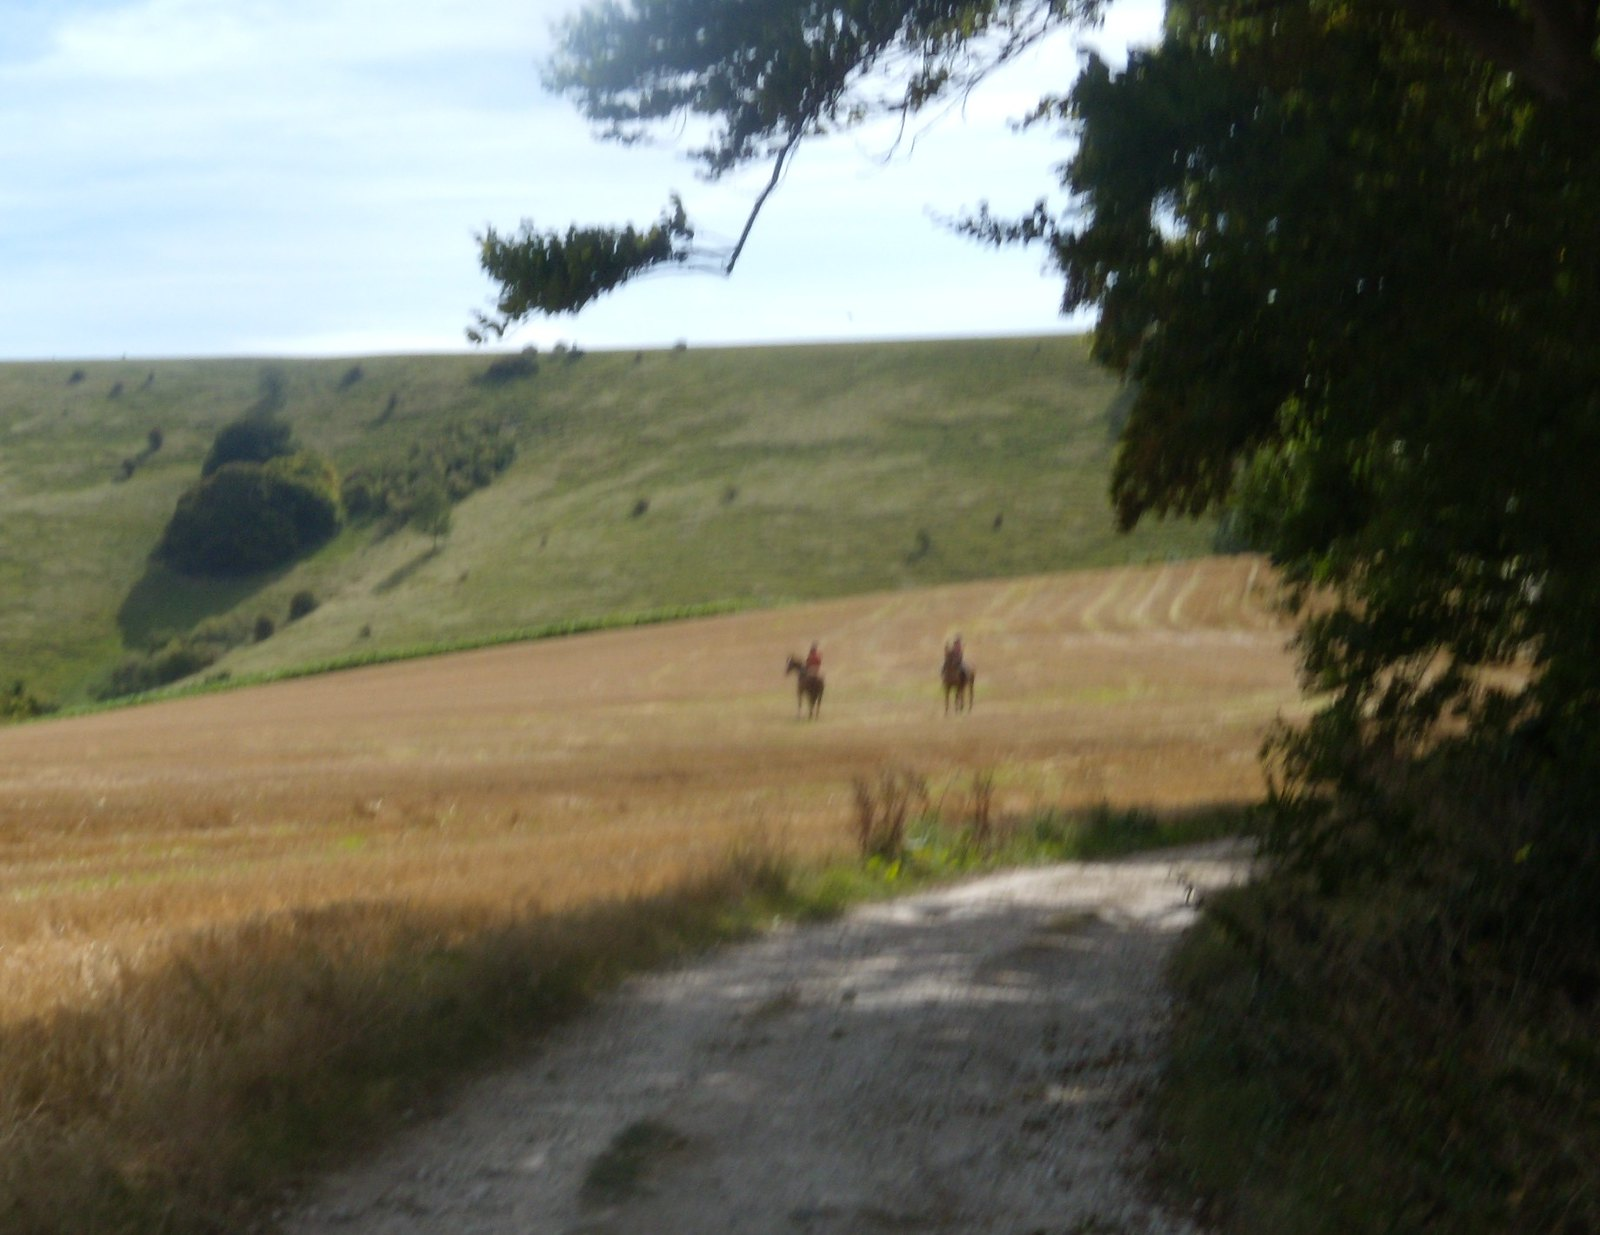 Horses Glynde to Seaford